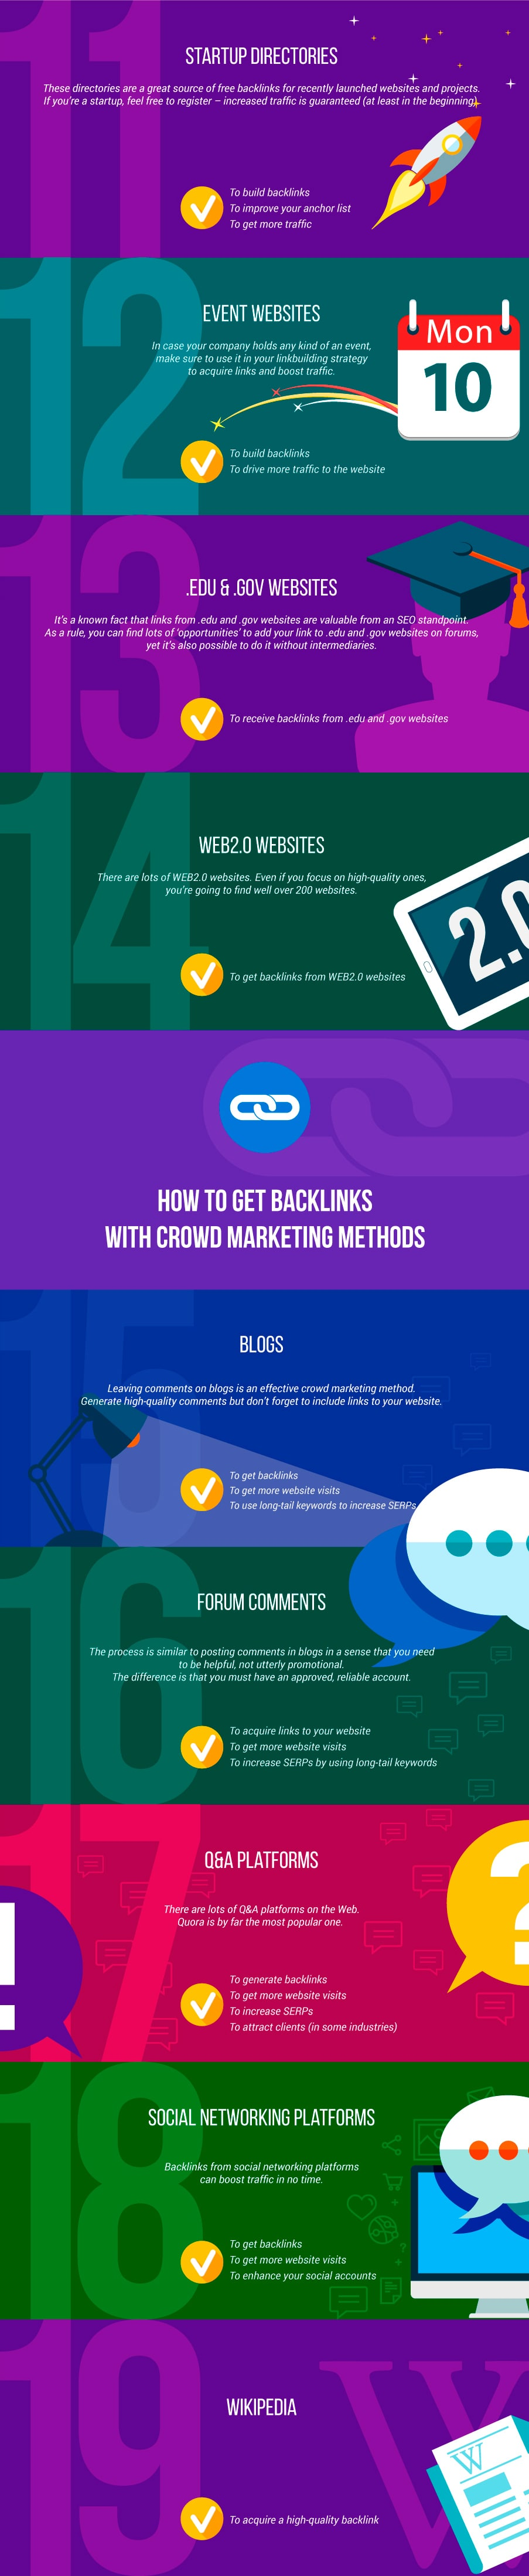 best-place-to-buy-high-da-quality-backlinks-infographic